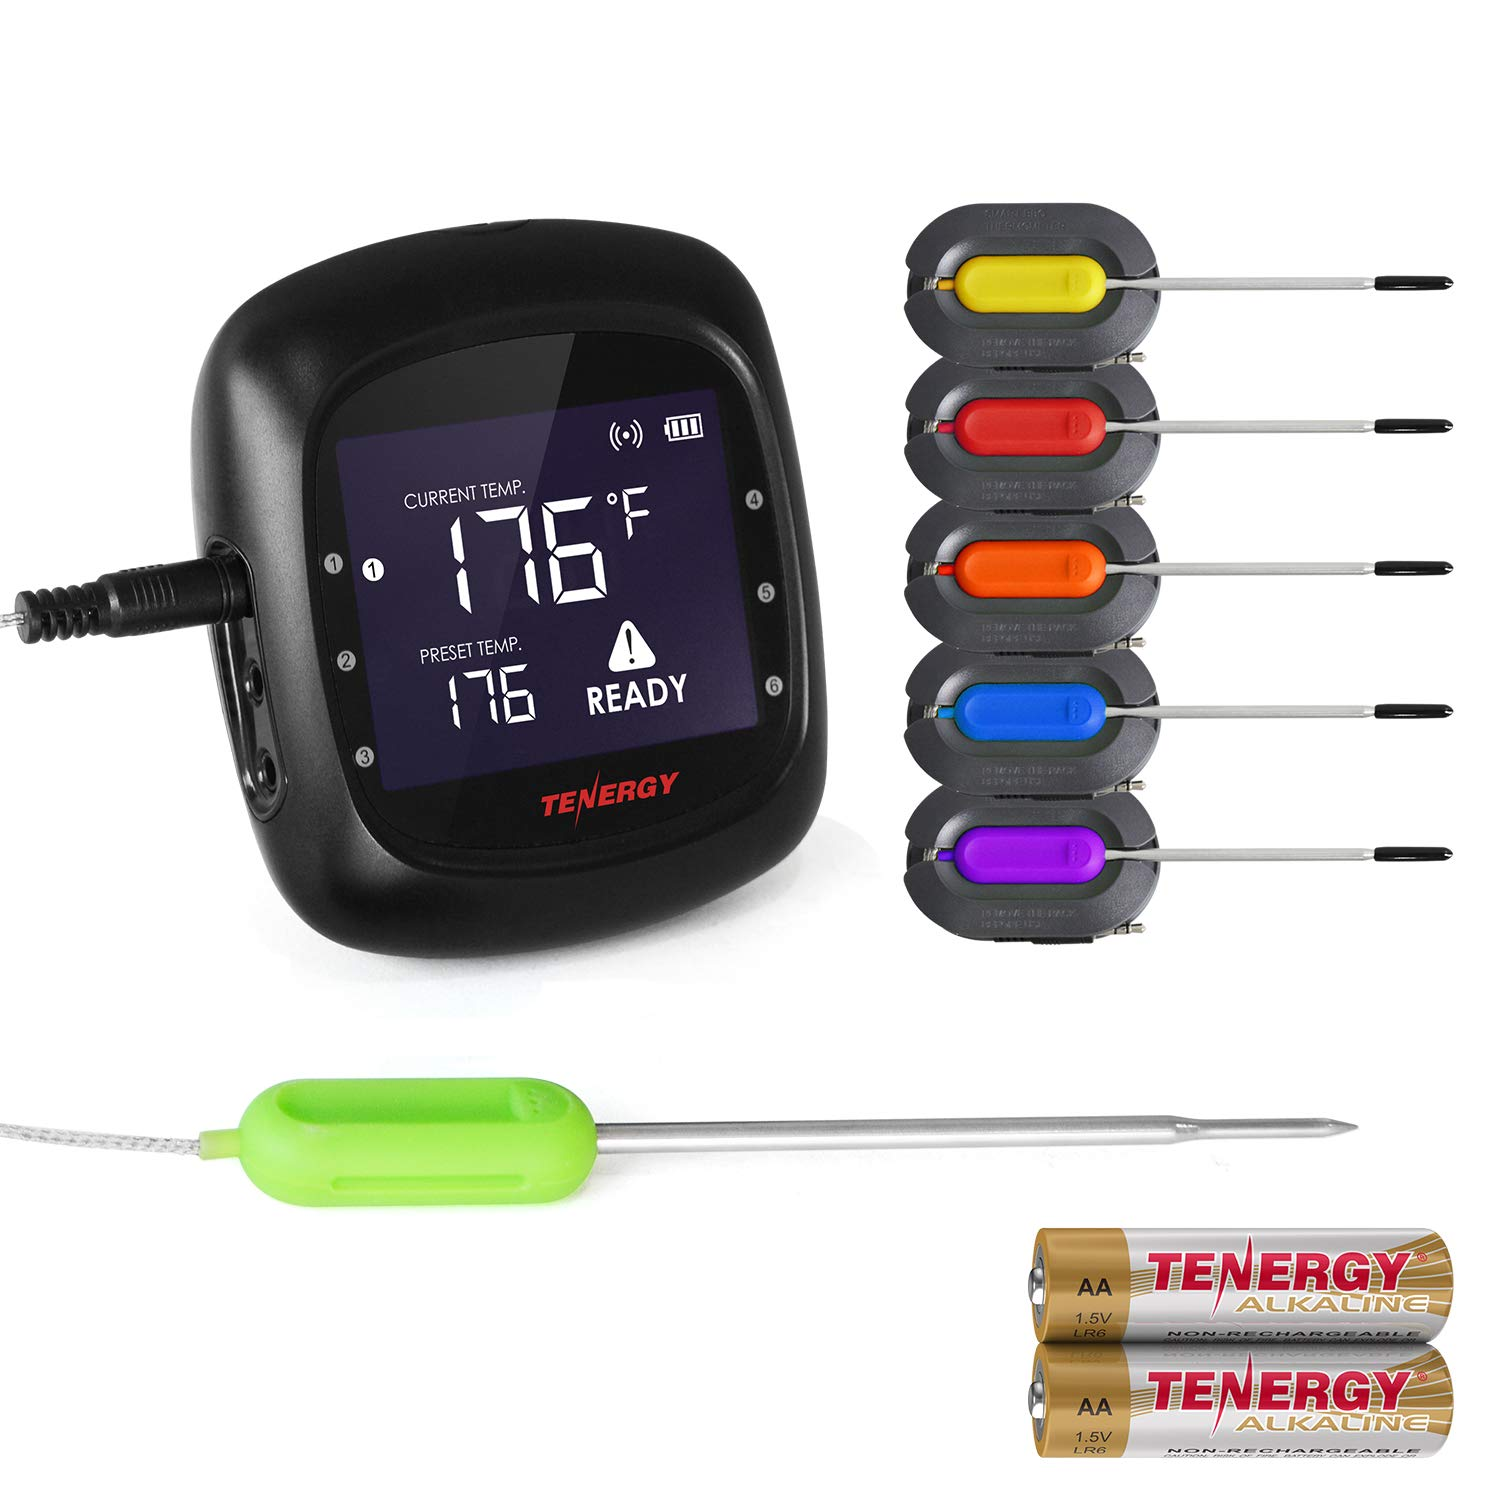 Tenergy Solis Digital Meat Thermometer, APP Controlled Wireless Bluetooth Smart BBQ Thermometer w/ 6 Stainless Steel Probes, Large LCD Display, Carrying Case, Cooking Thermometer for Grill & Smoker by Tenergy